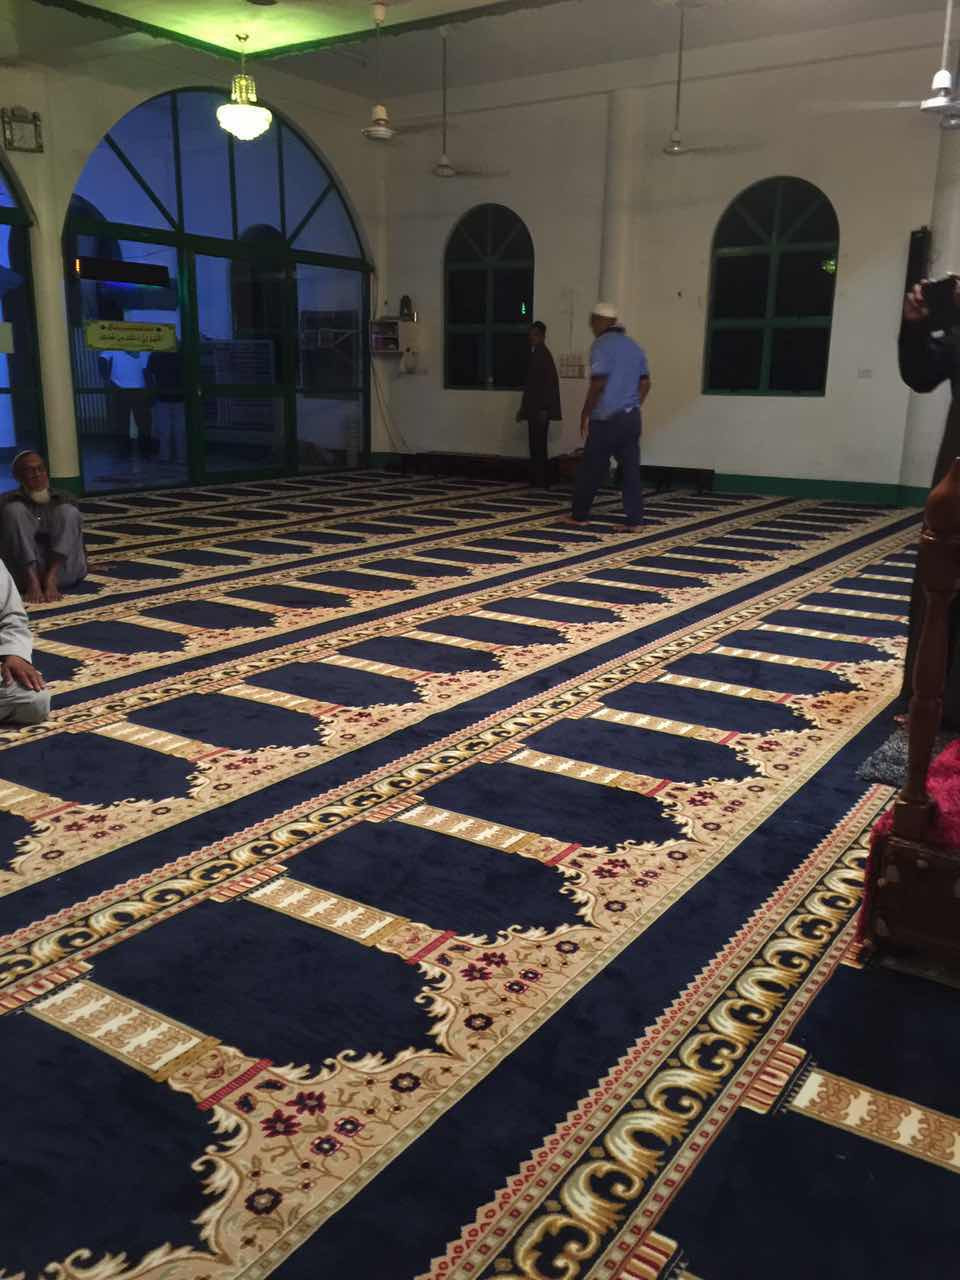 Mosque carpet mosque prayer carpet carpet for mosque buy mosque carpet mosque prayer carpet - Corridor tapijt ...